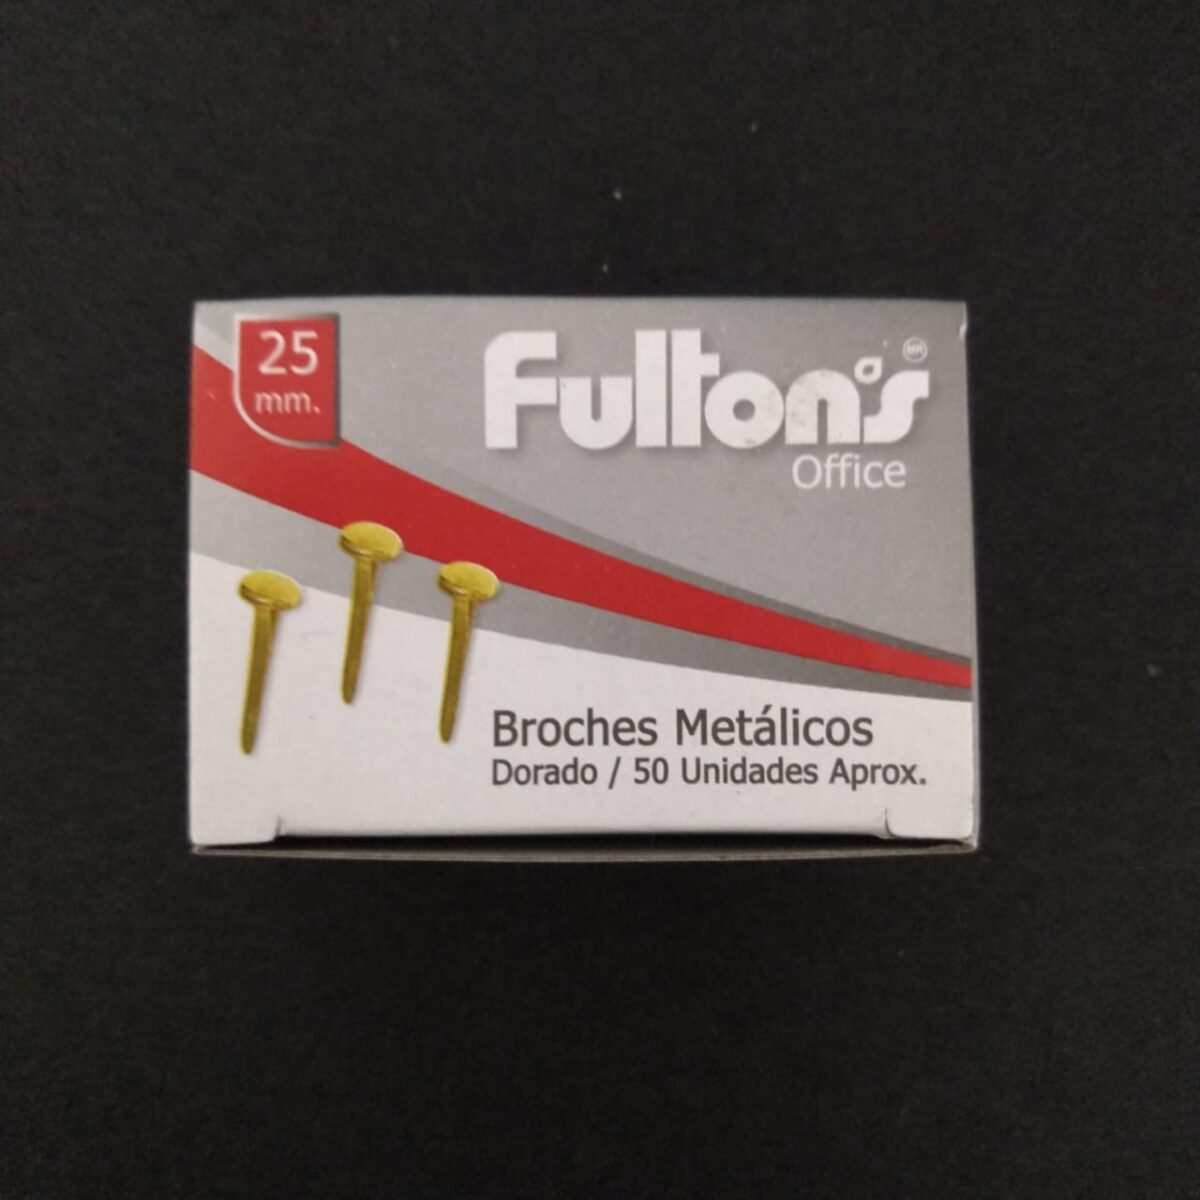 Broche Metalico 25 Mm. Caja De 50 Un. Fultons